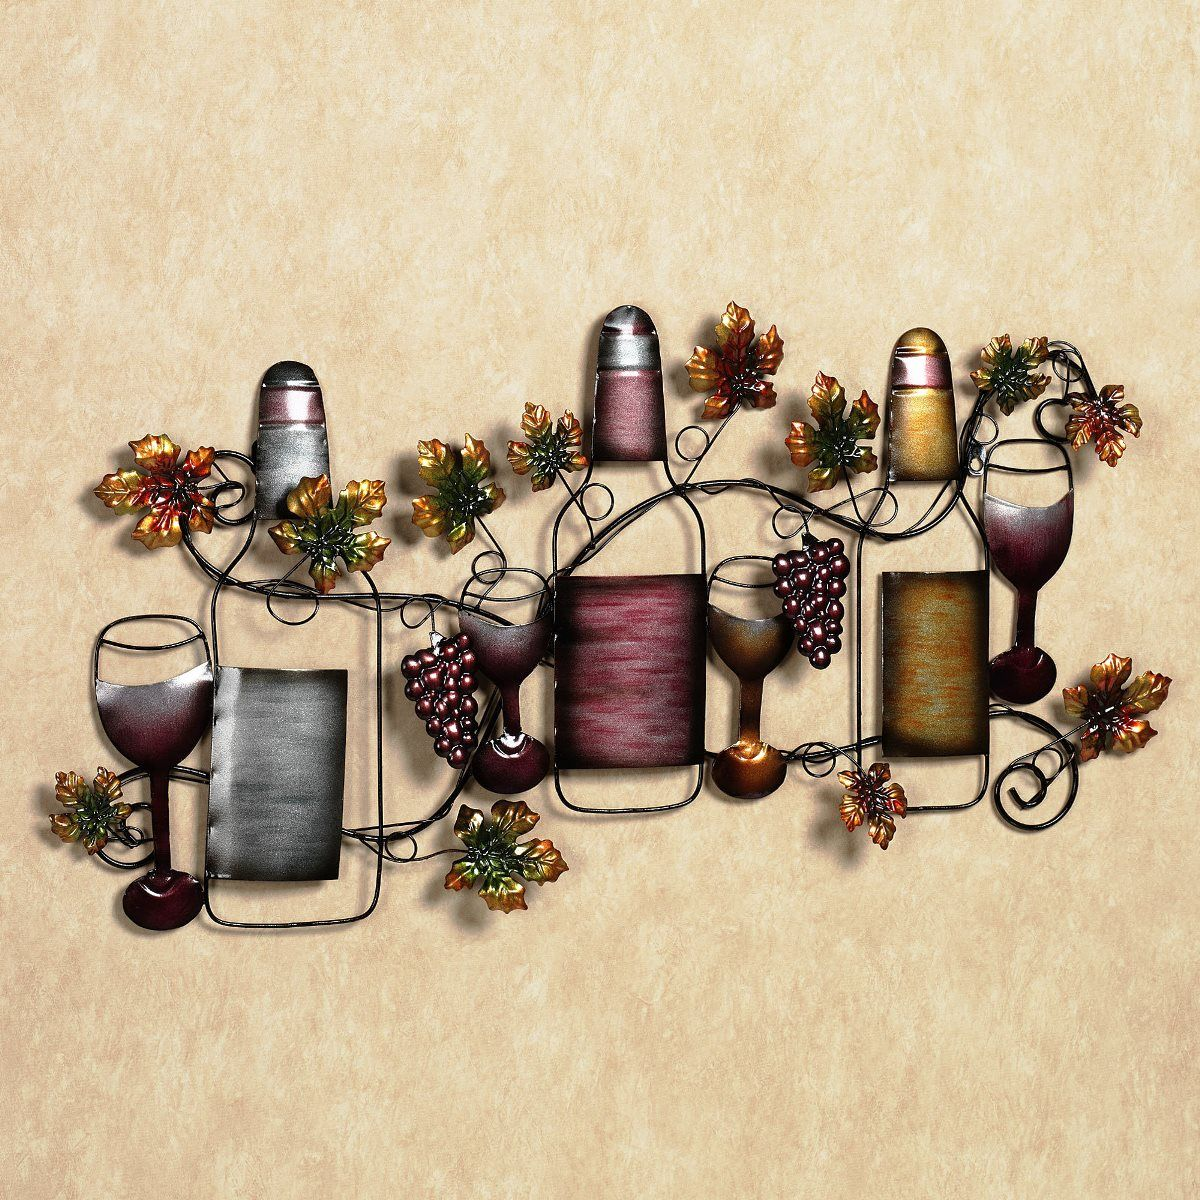 Ingenious wine wall art decor ideas introducing intricate for Wall decor wine bottles